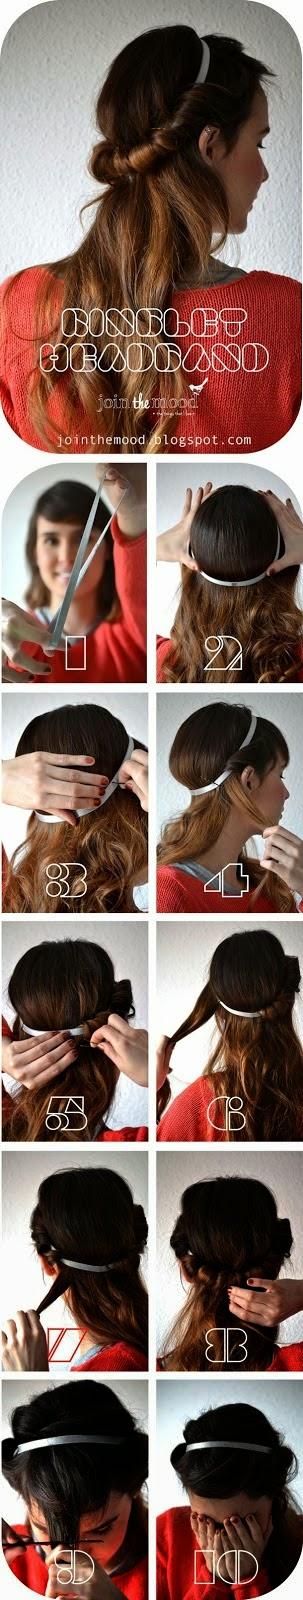 5 Cute Hairstyles for Girls}